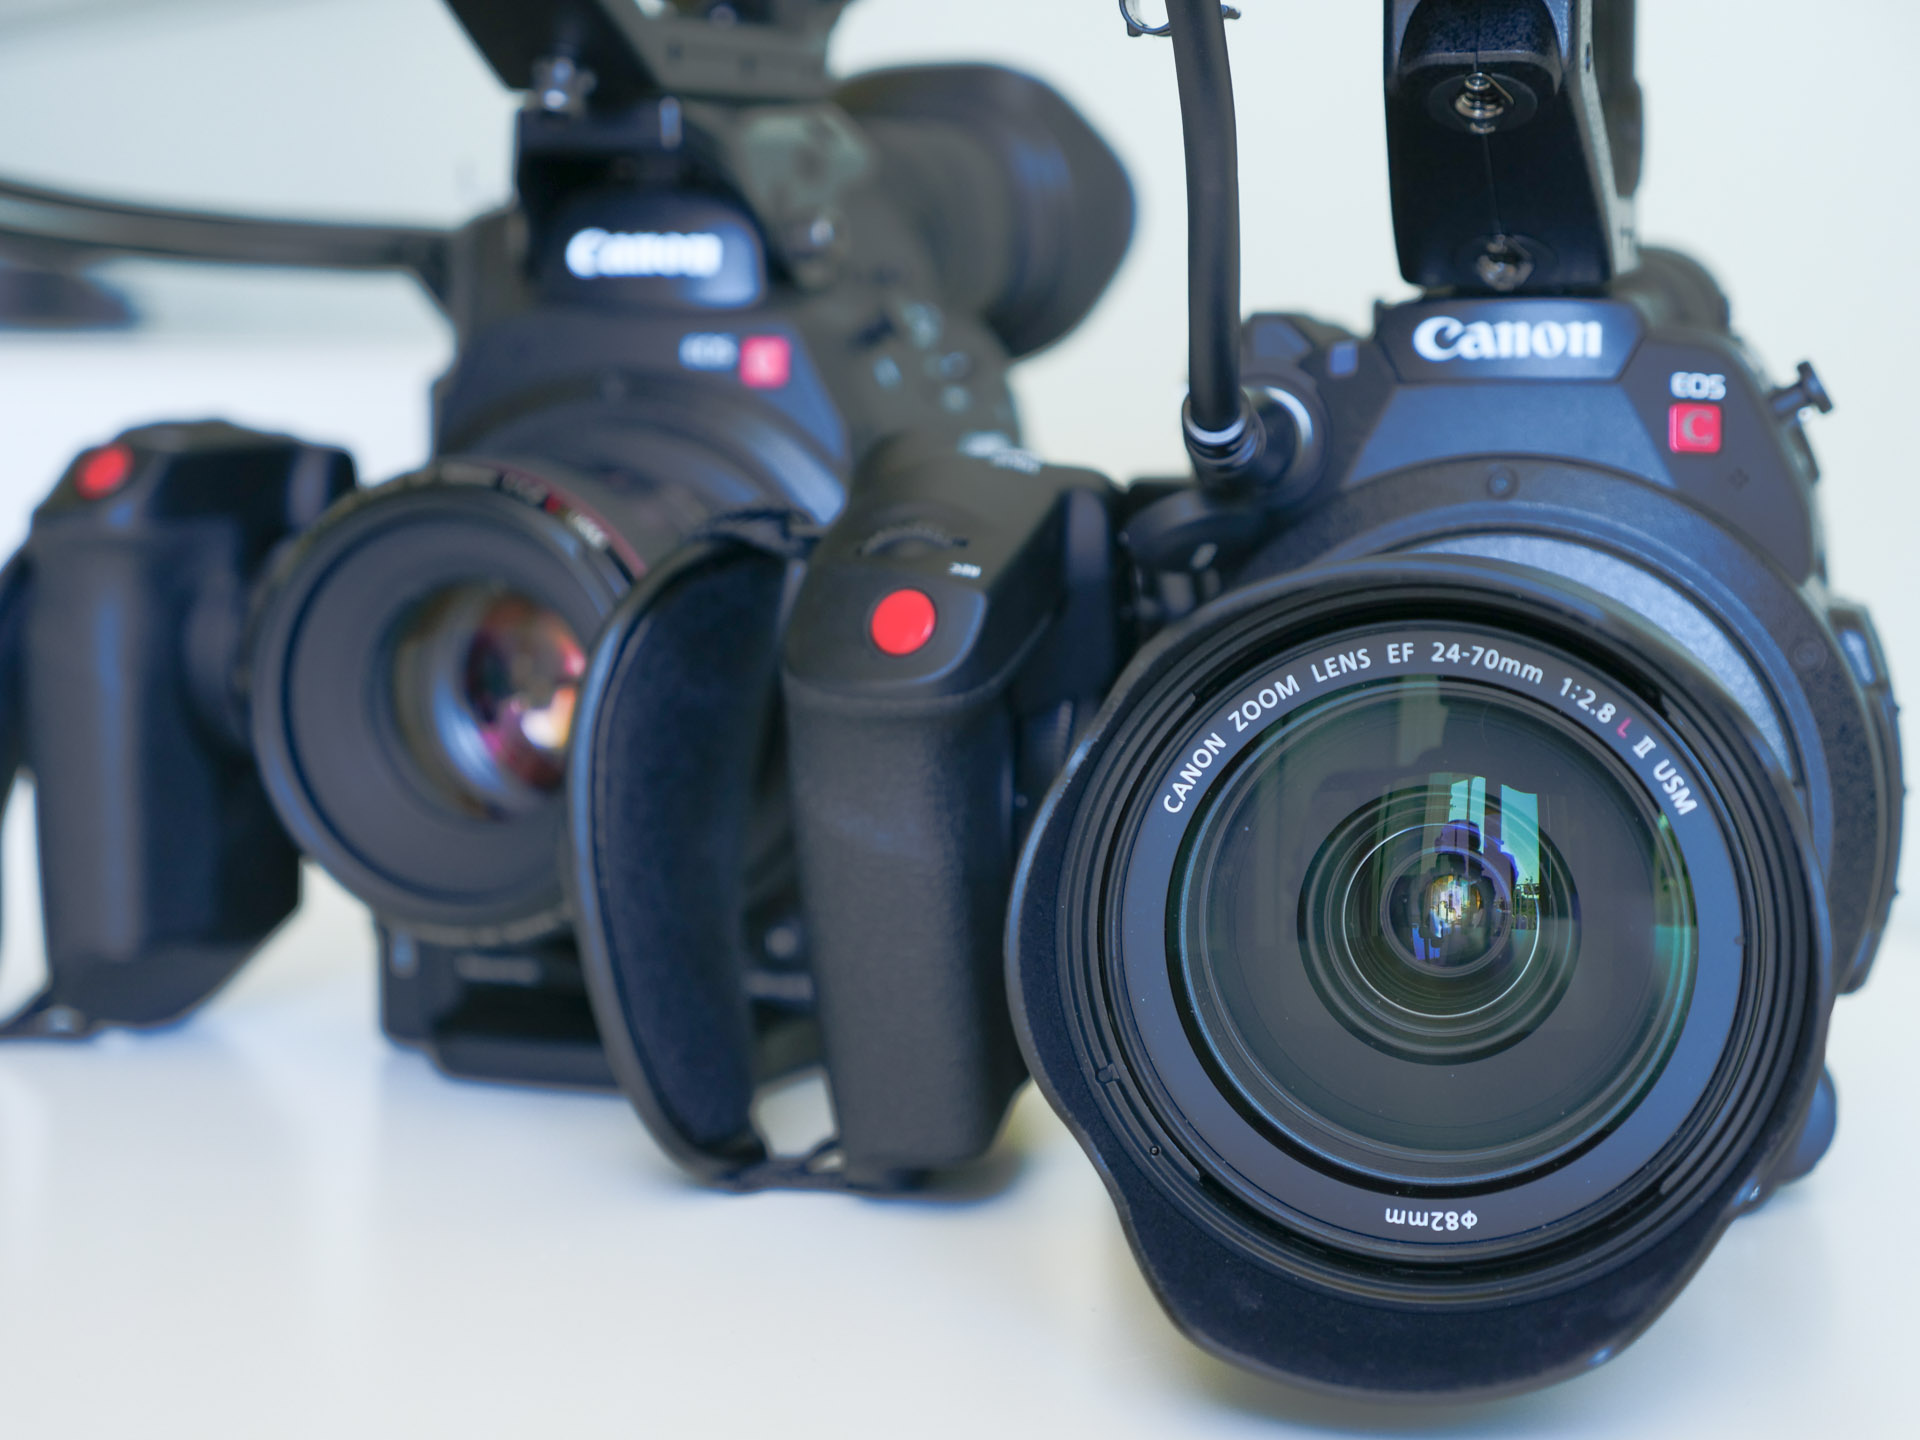 Canon C200: Is this the upgrade for C100, C300 MKI owners